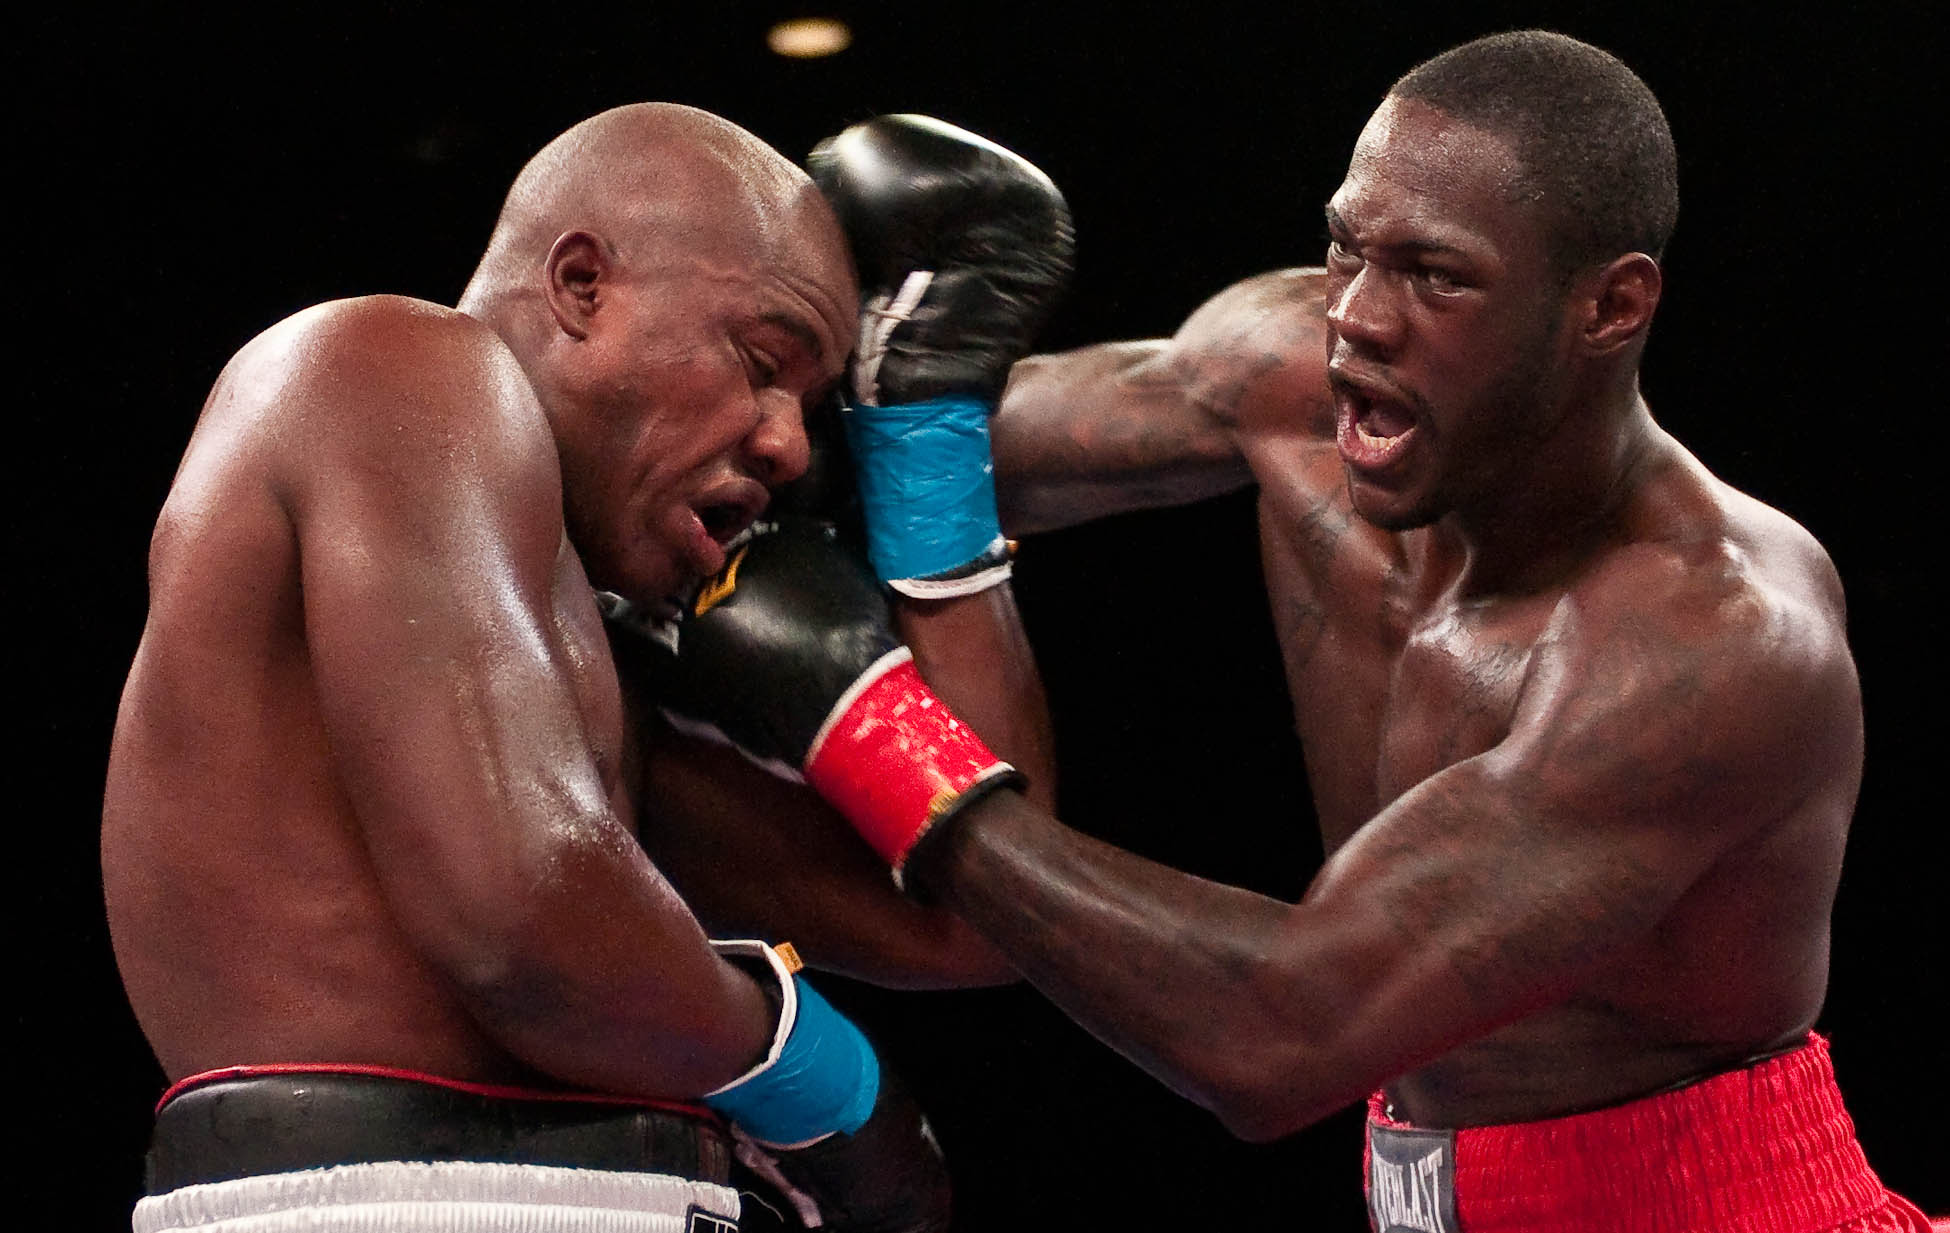 Deontay Wilder: Deontay Wilder Wants To Bring The Heavyweight Belt Back To